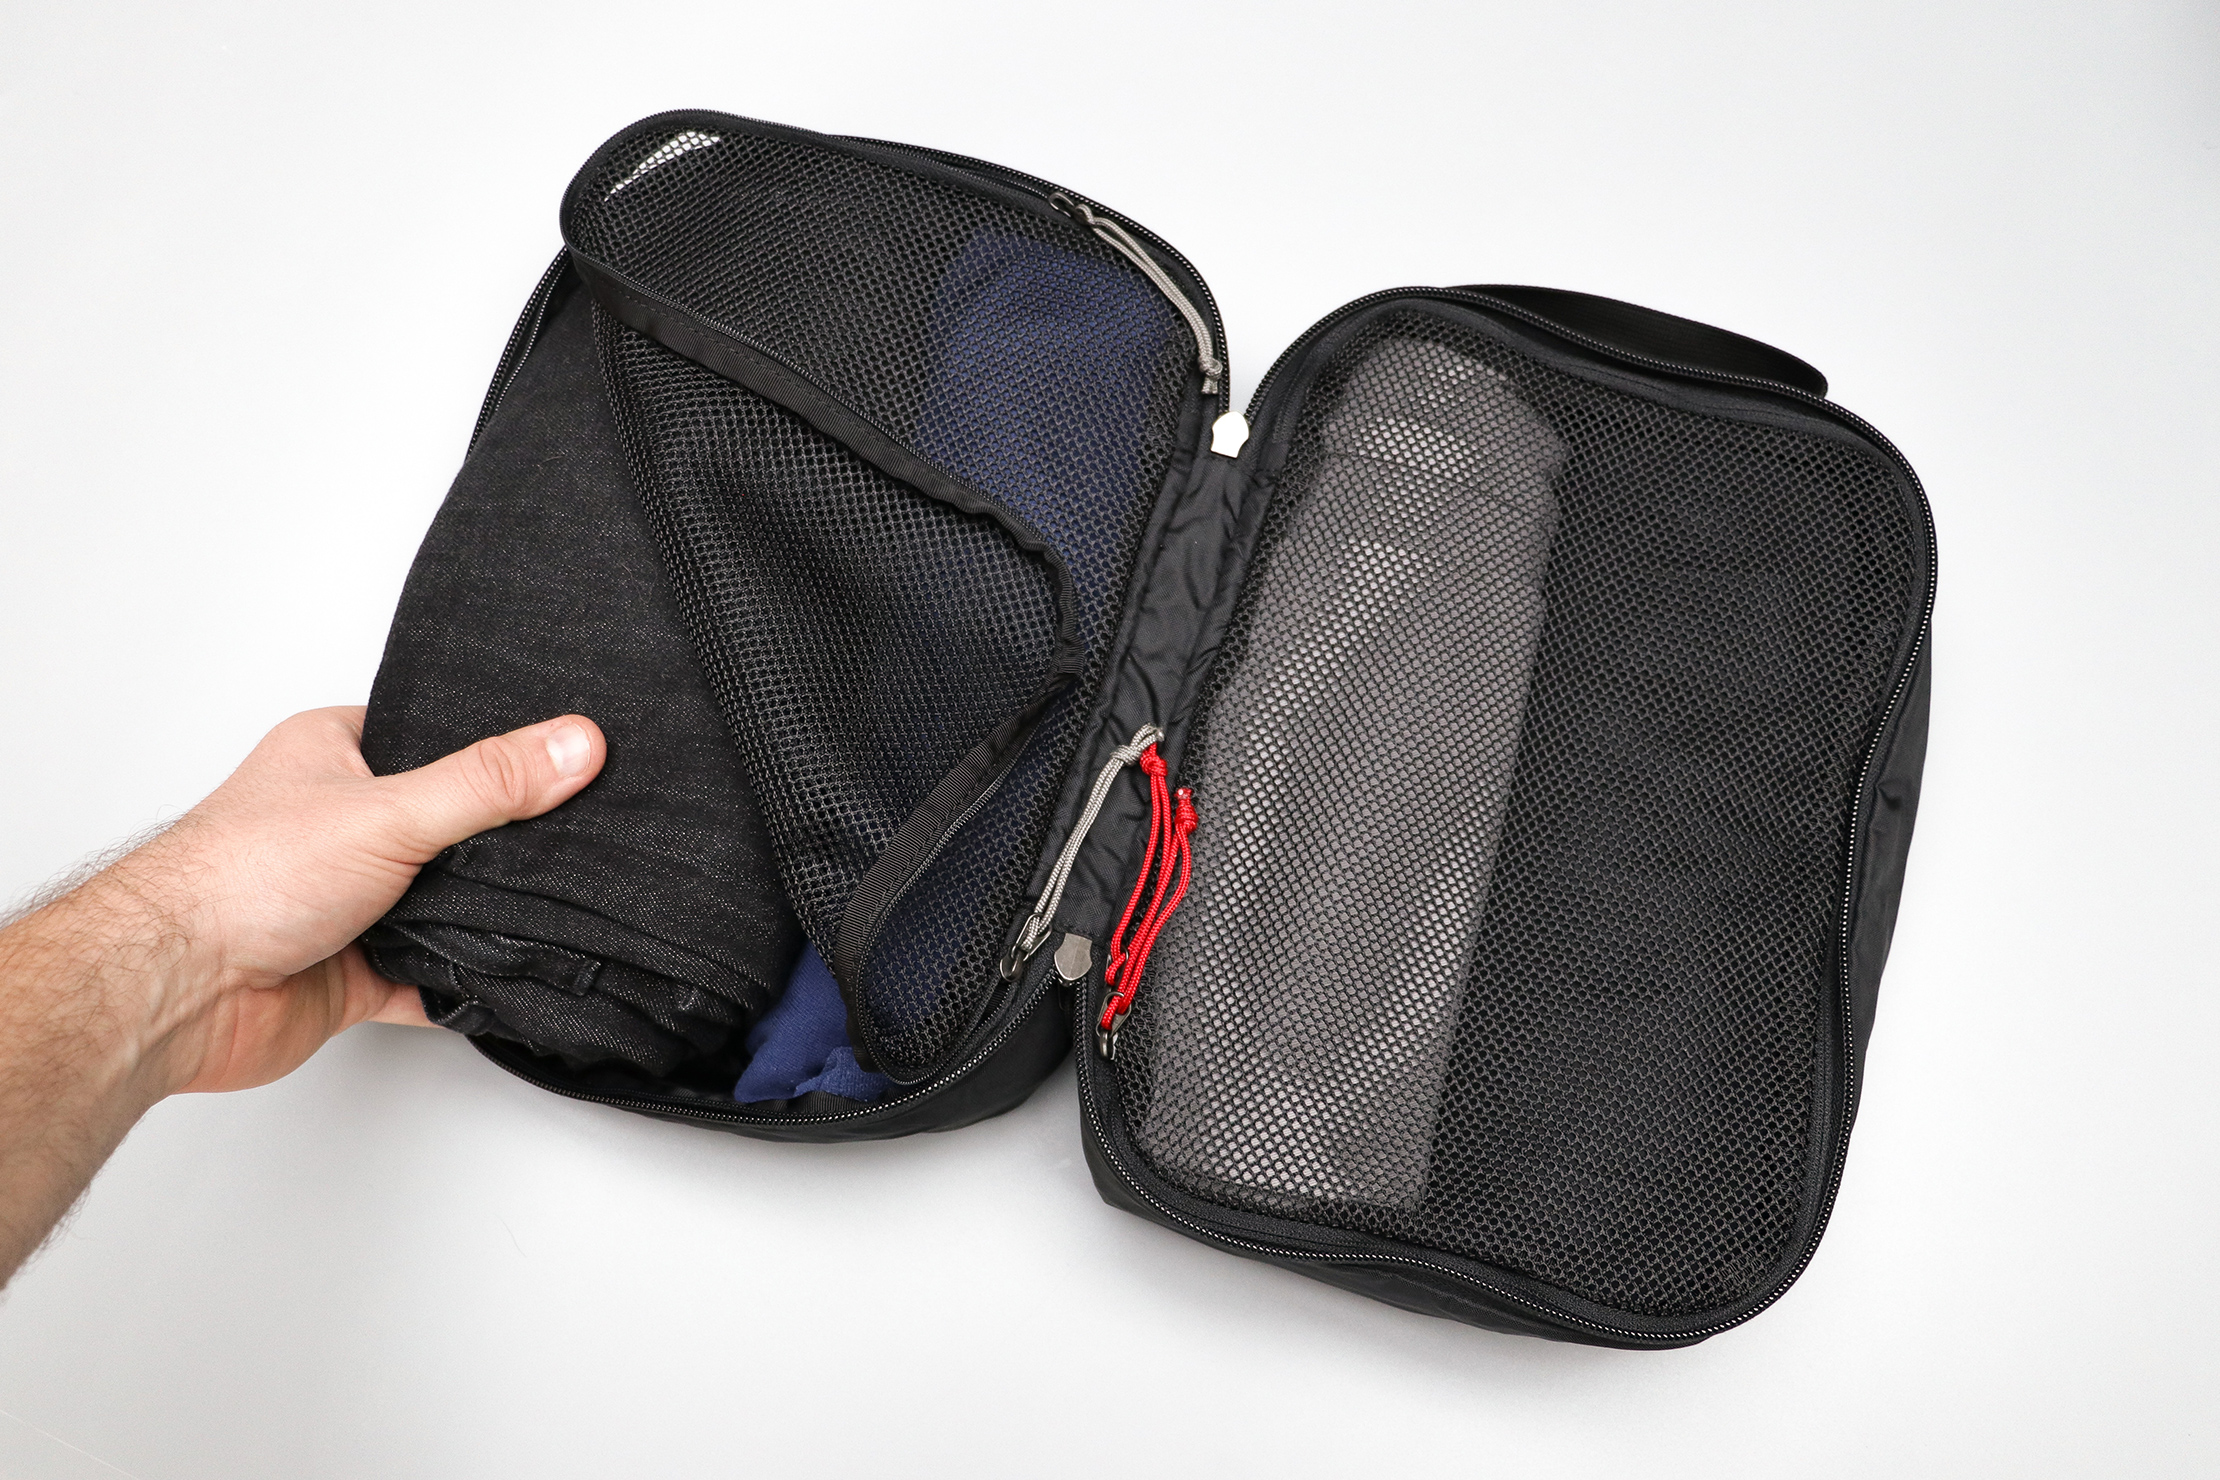 GORUCK Packing Cubes In Use